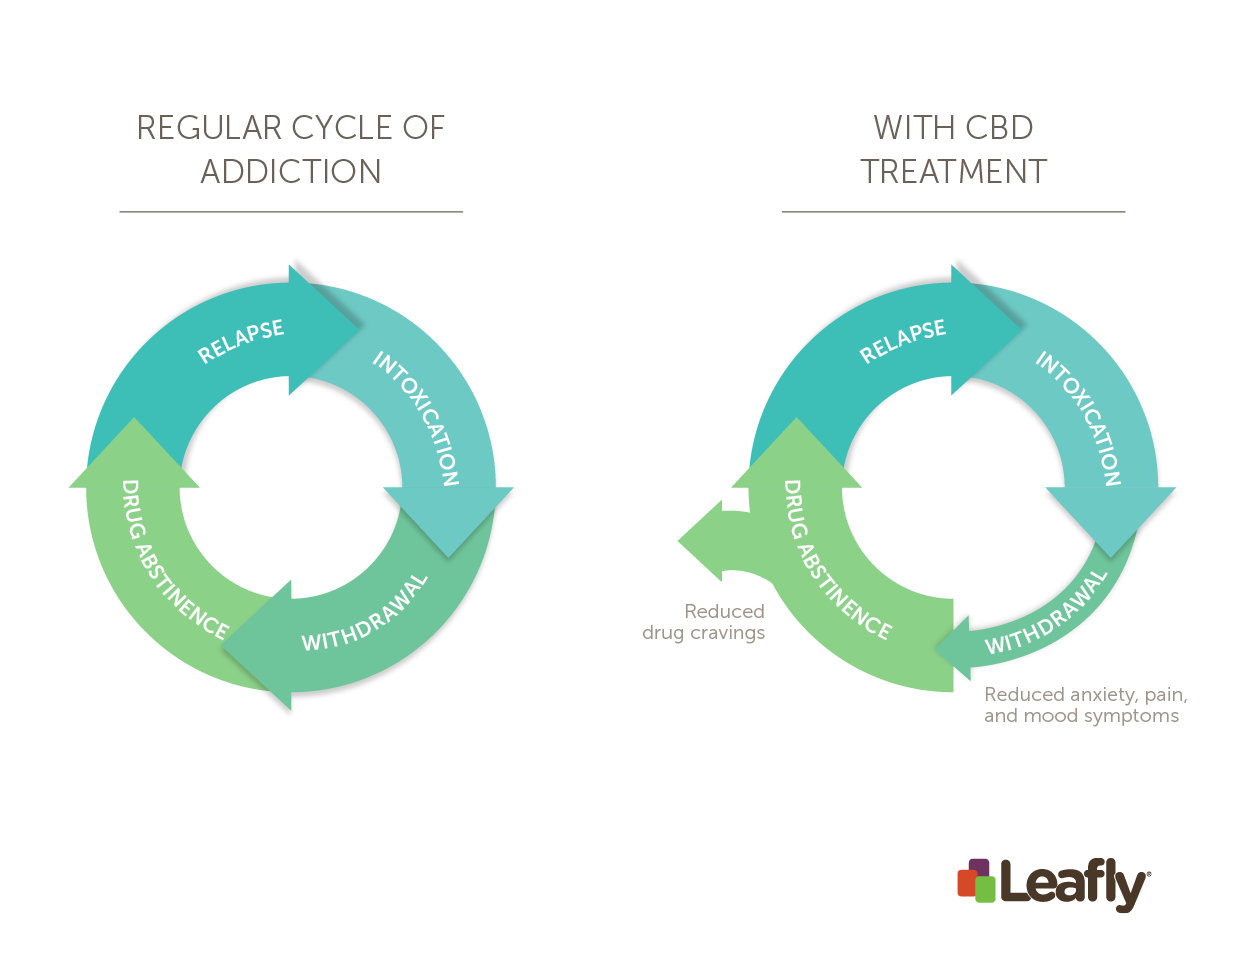 Regular cycle of addiction vs. with CBD treatment